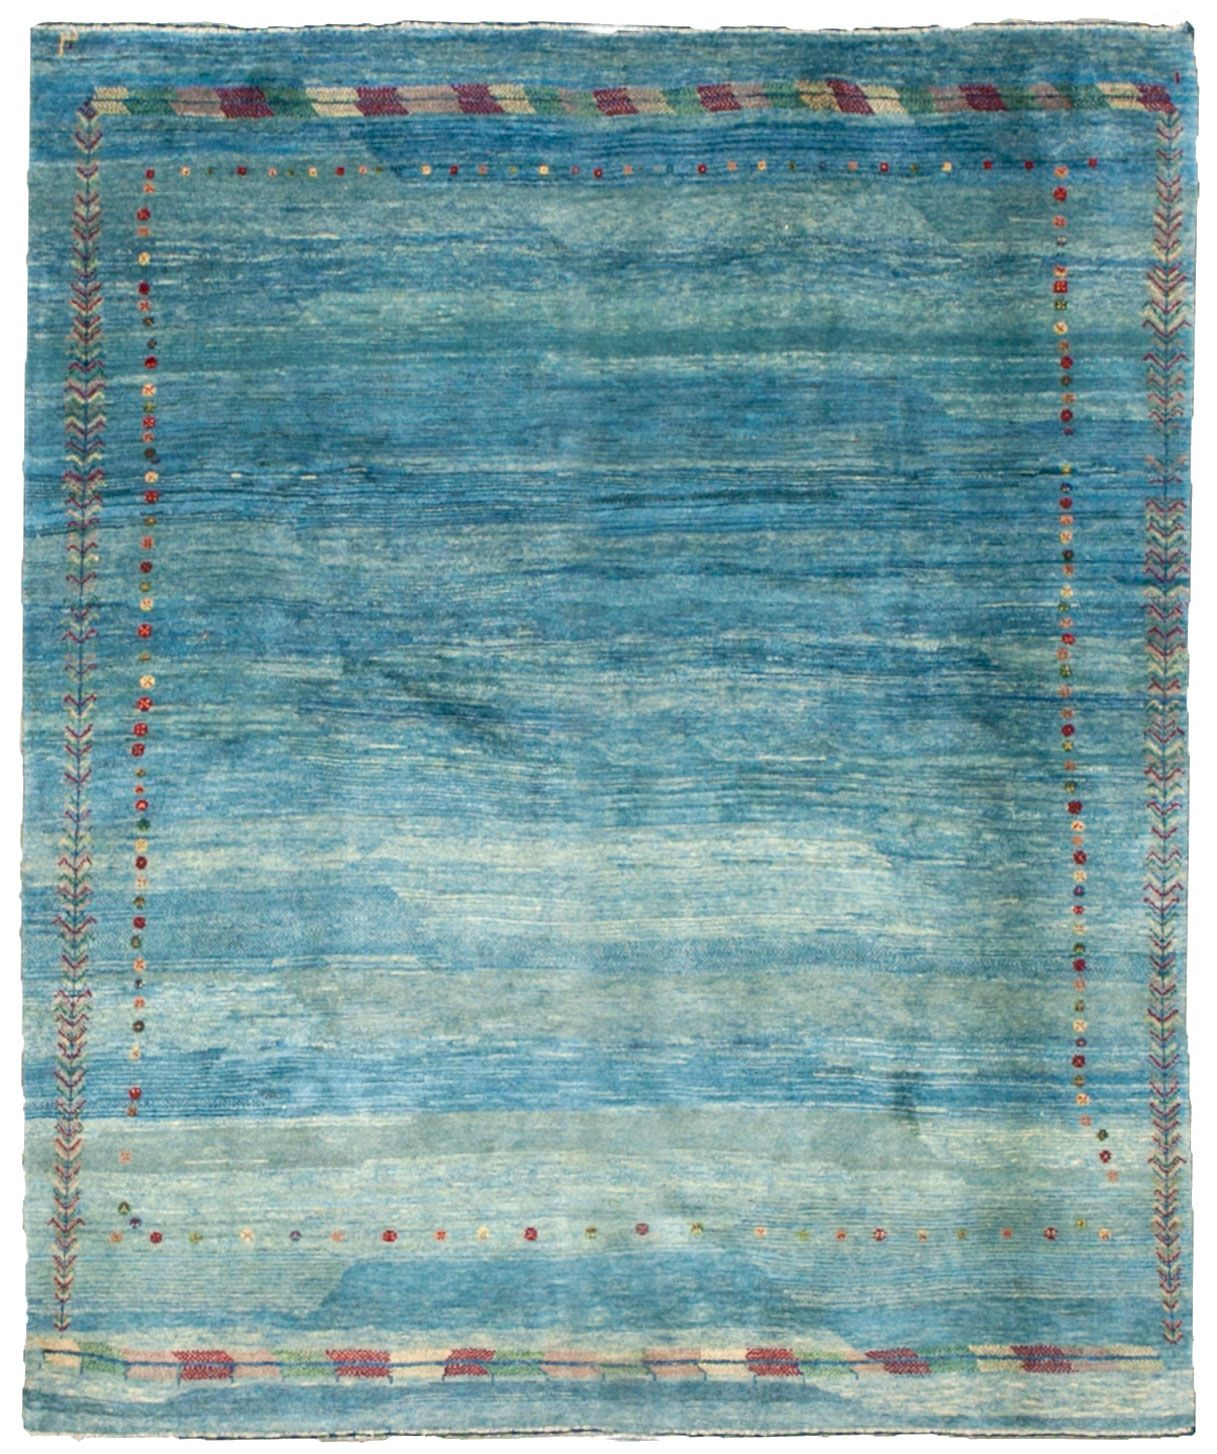 Höffner Teppiche Sale Stoff Teppiche Overdyed Rugs Sale Home Overdyed Rugs